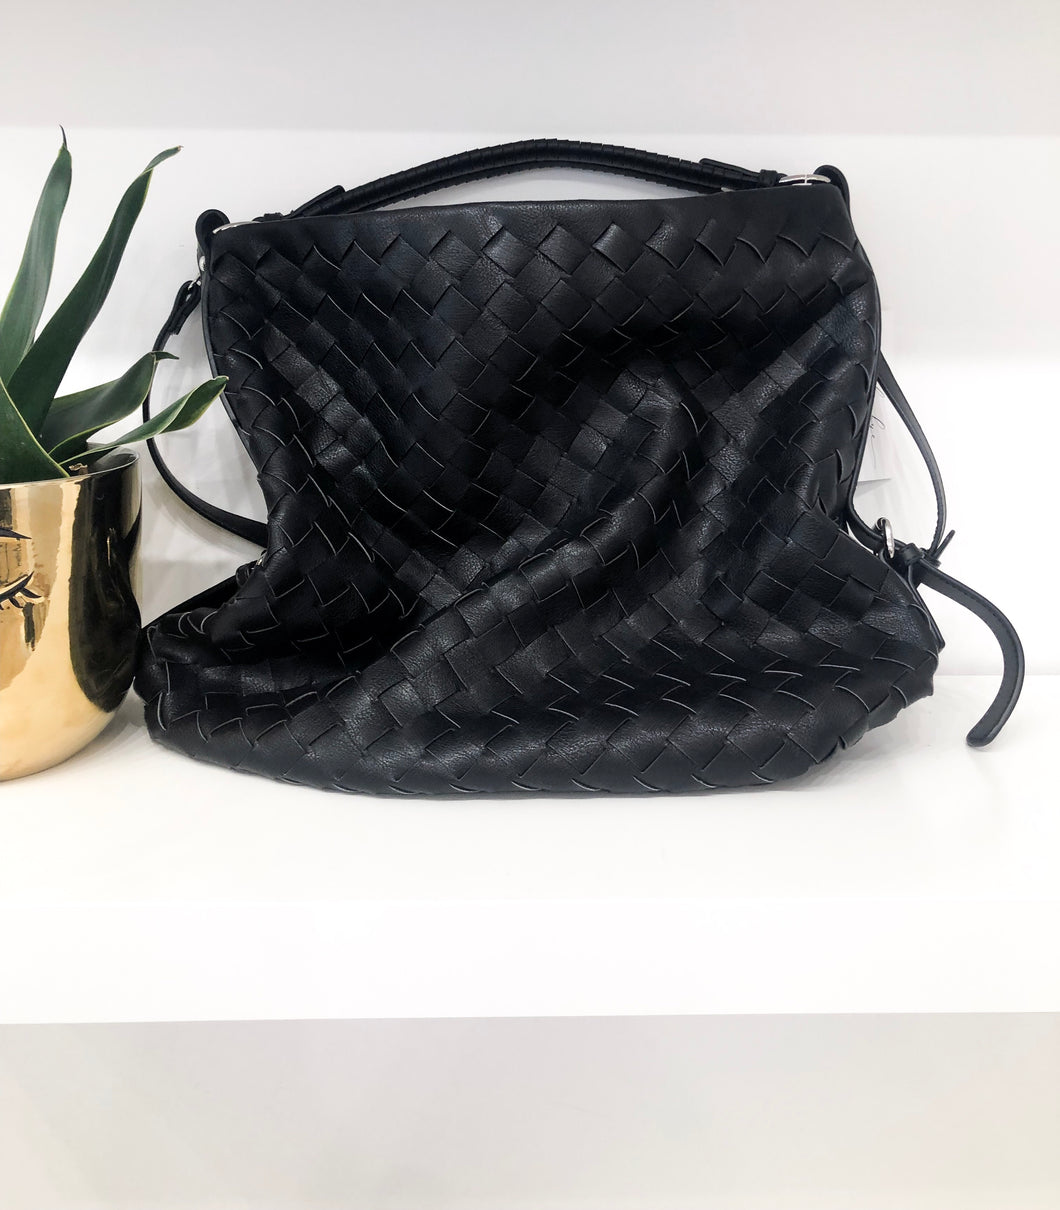 Montecito Bag in Black